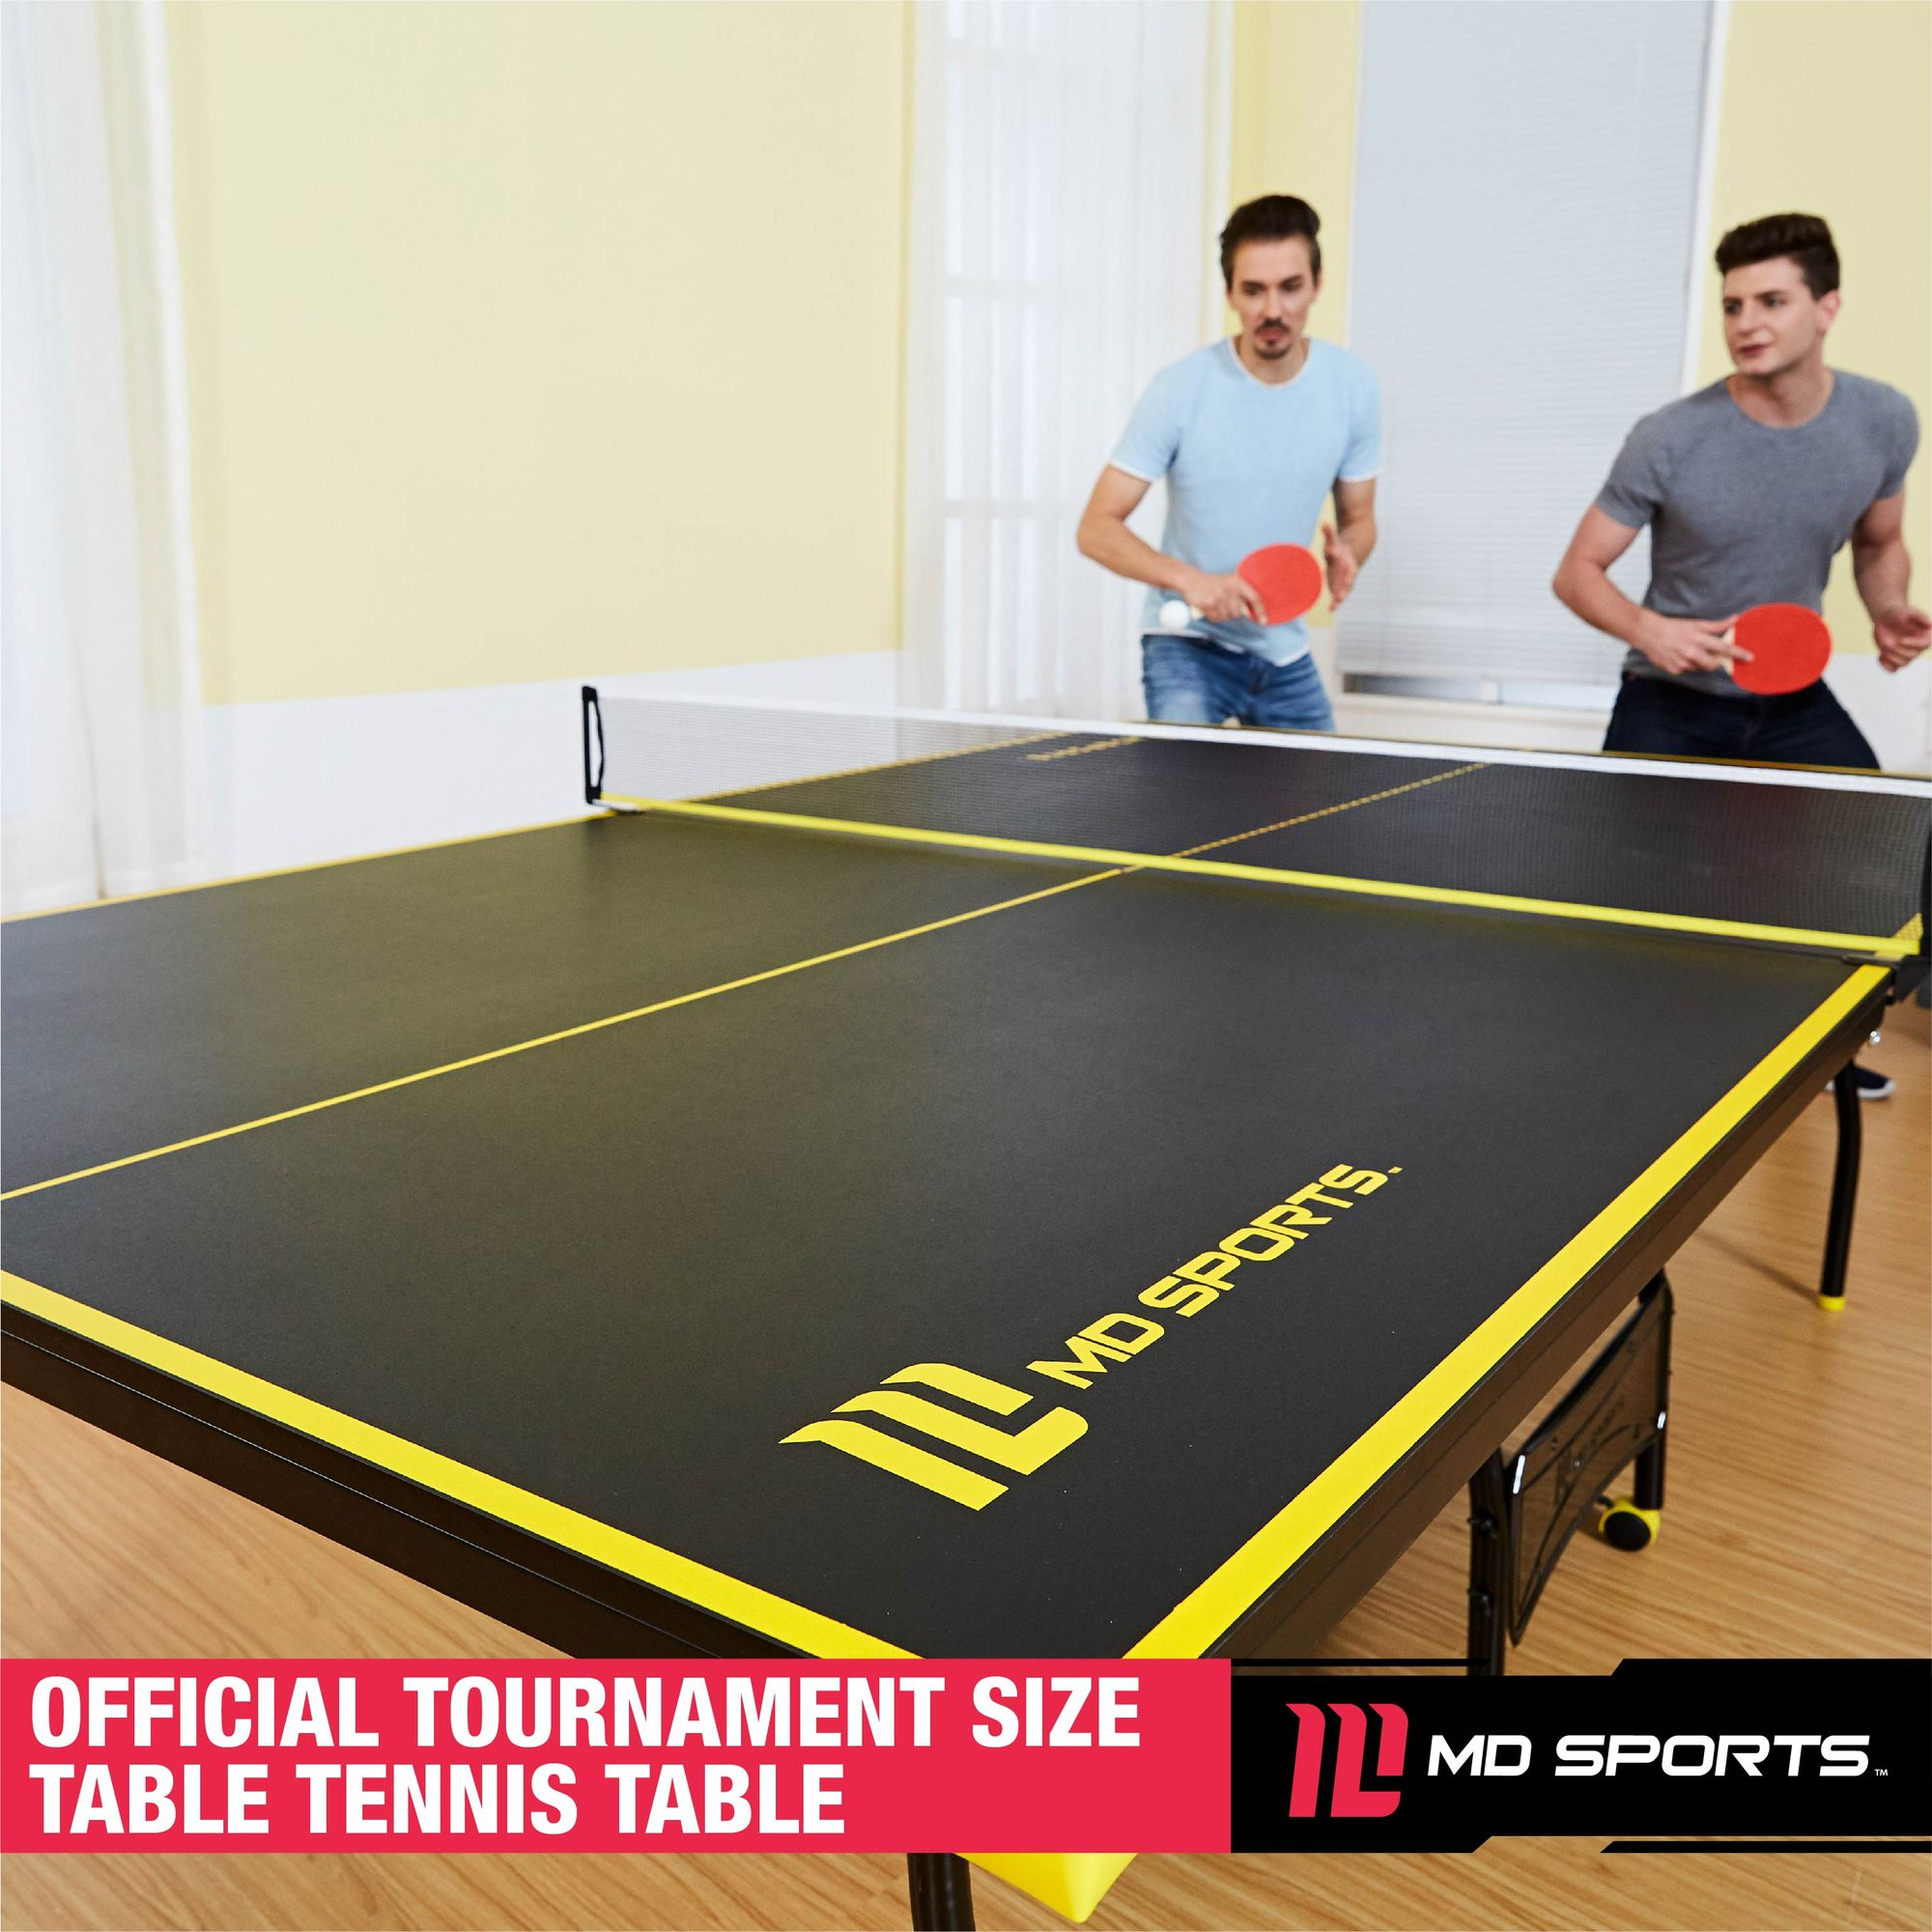 Genial MD Sports Official Size Table Tennis Table, With Paddle And Balls,  Black/Yellow   Walmart.com